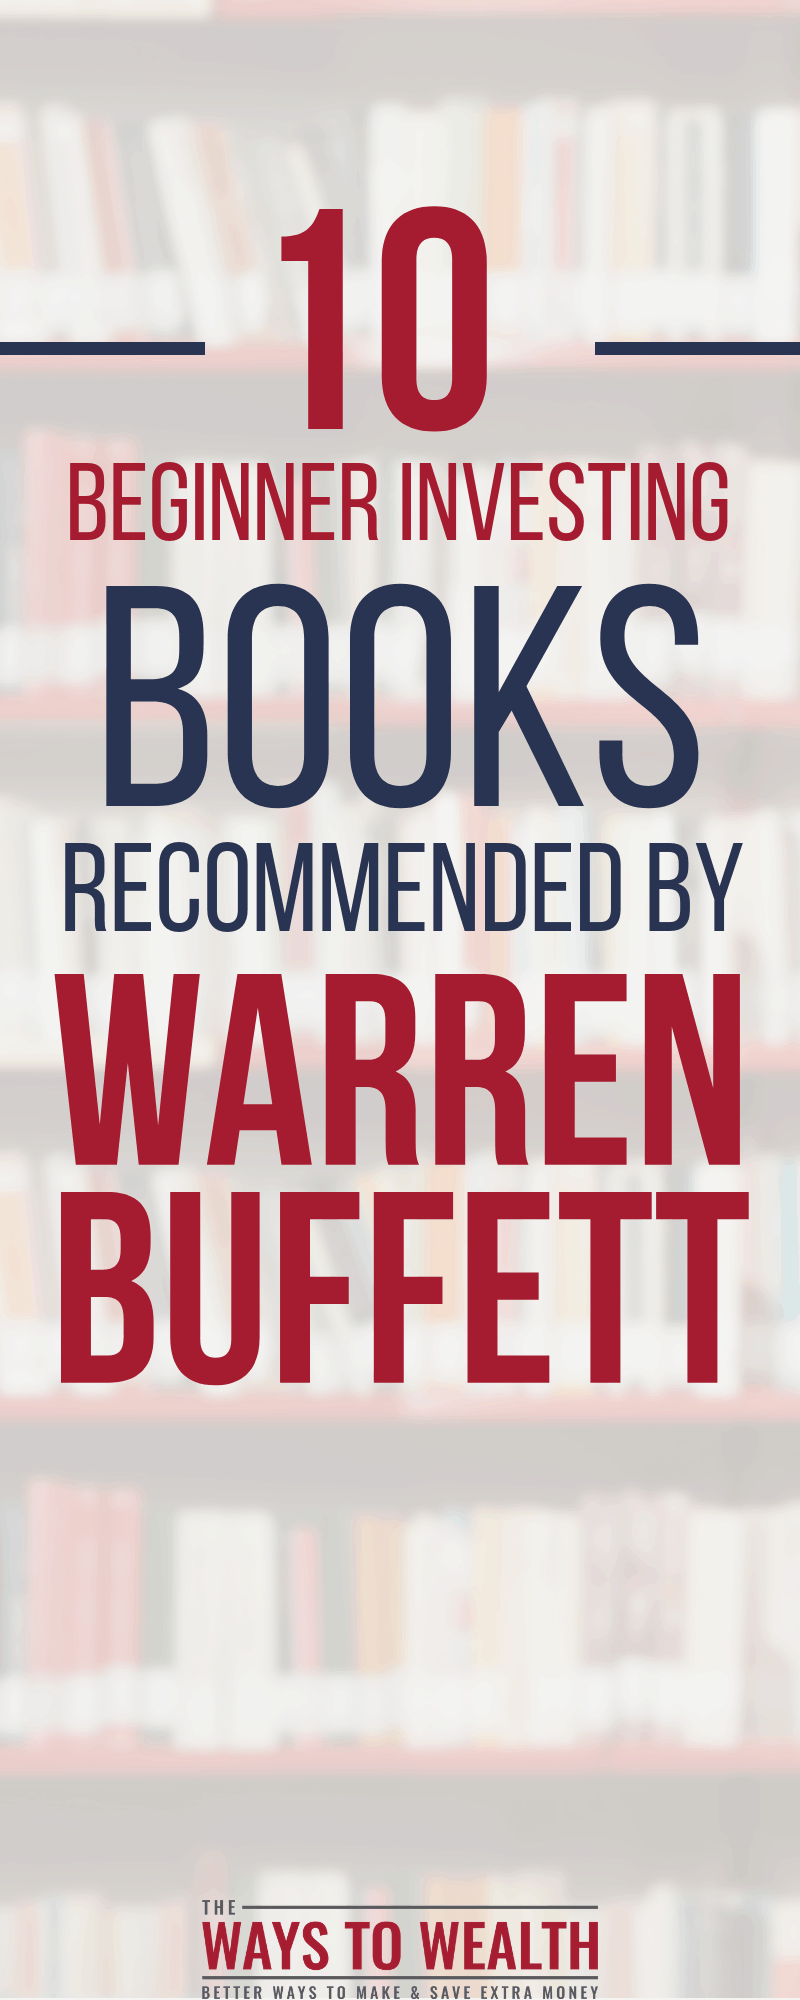 The complete list of Warren Buffett's favorite investing books. Discover the best investing books for beginners to advanced investors, from the greatest investor of all time.#investing #reading #moneymanagement #warrenbuffett